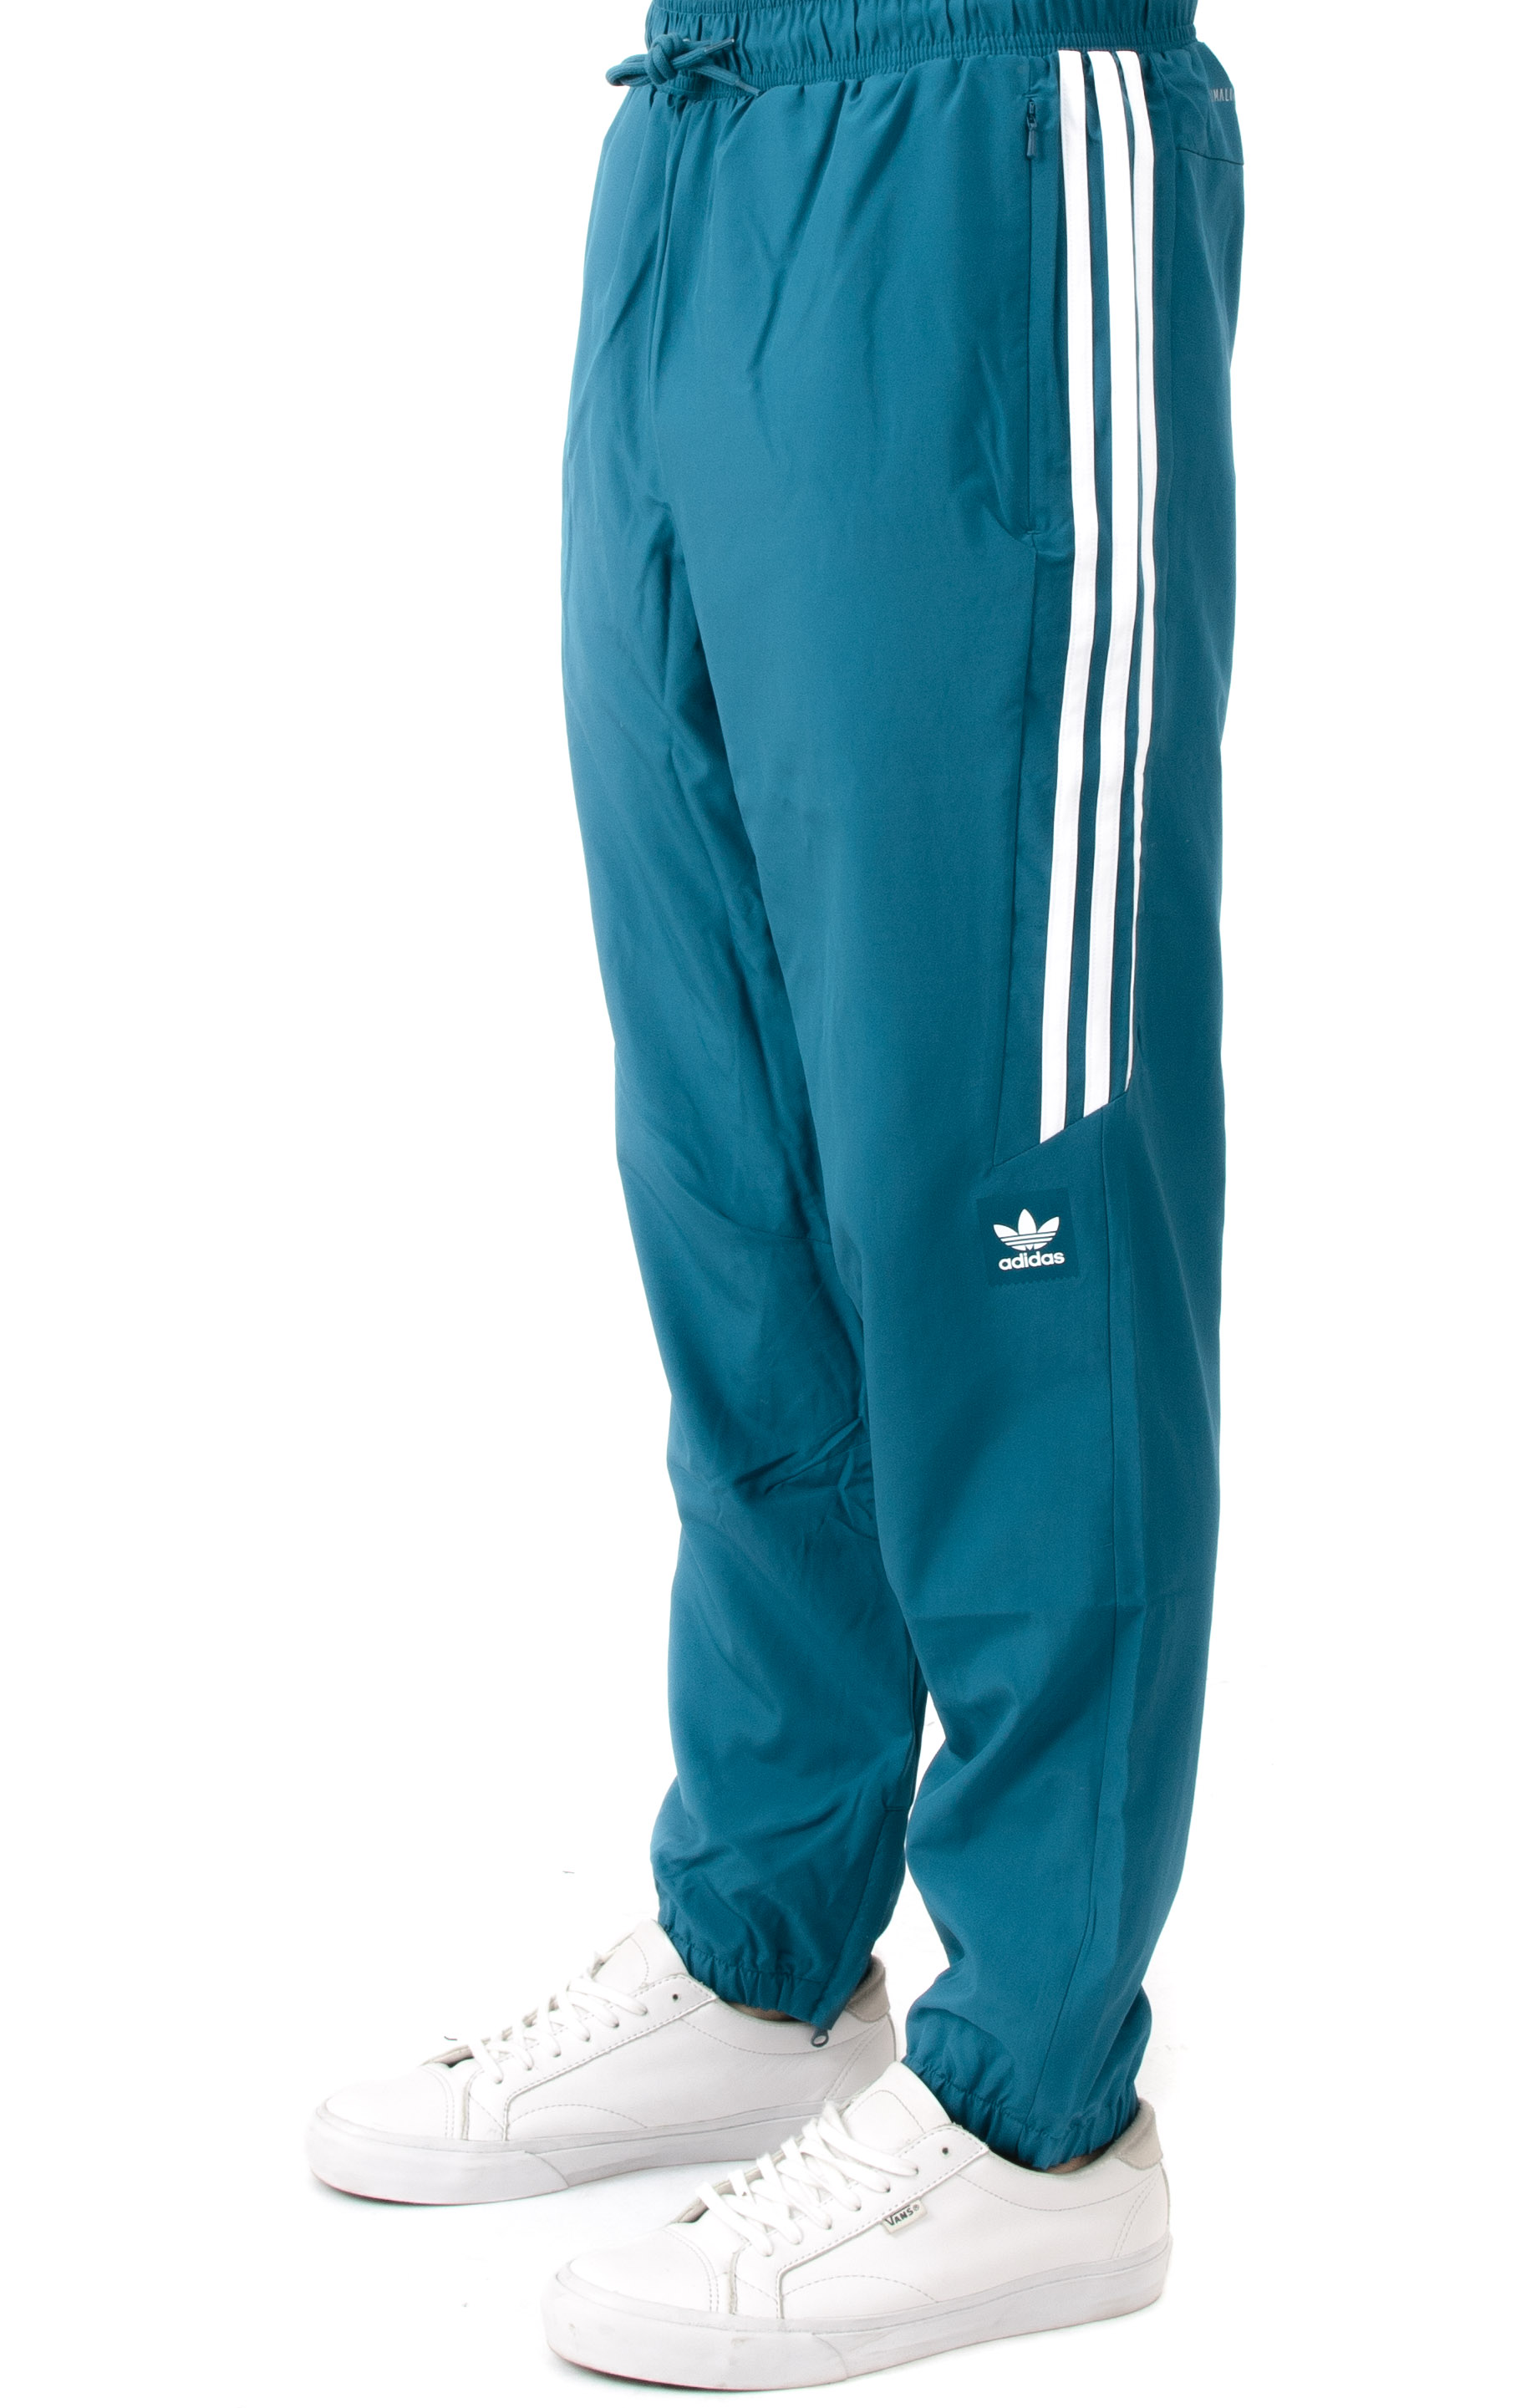 Classic Pants - Real Teal/White